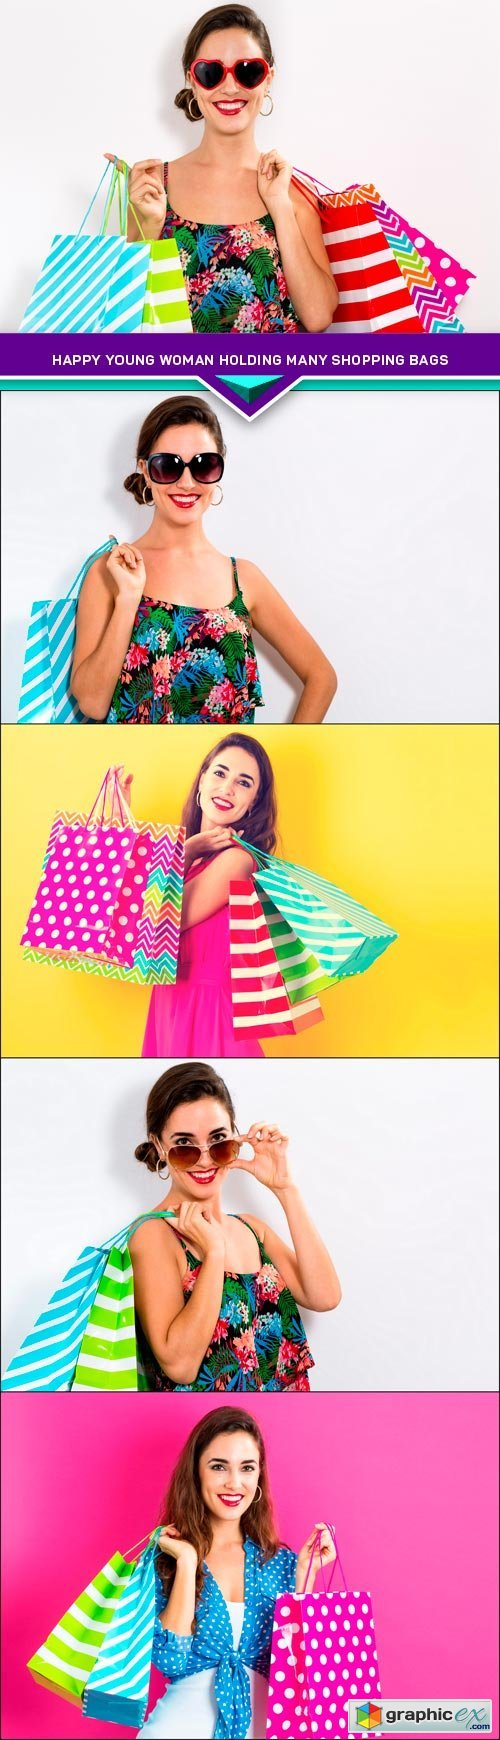 Happy young woman holding many shopping bags 5X JPEG